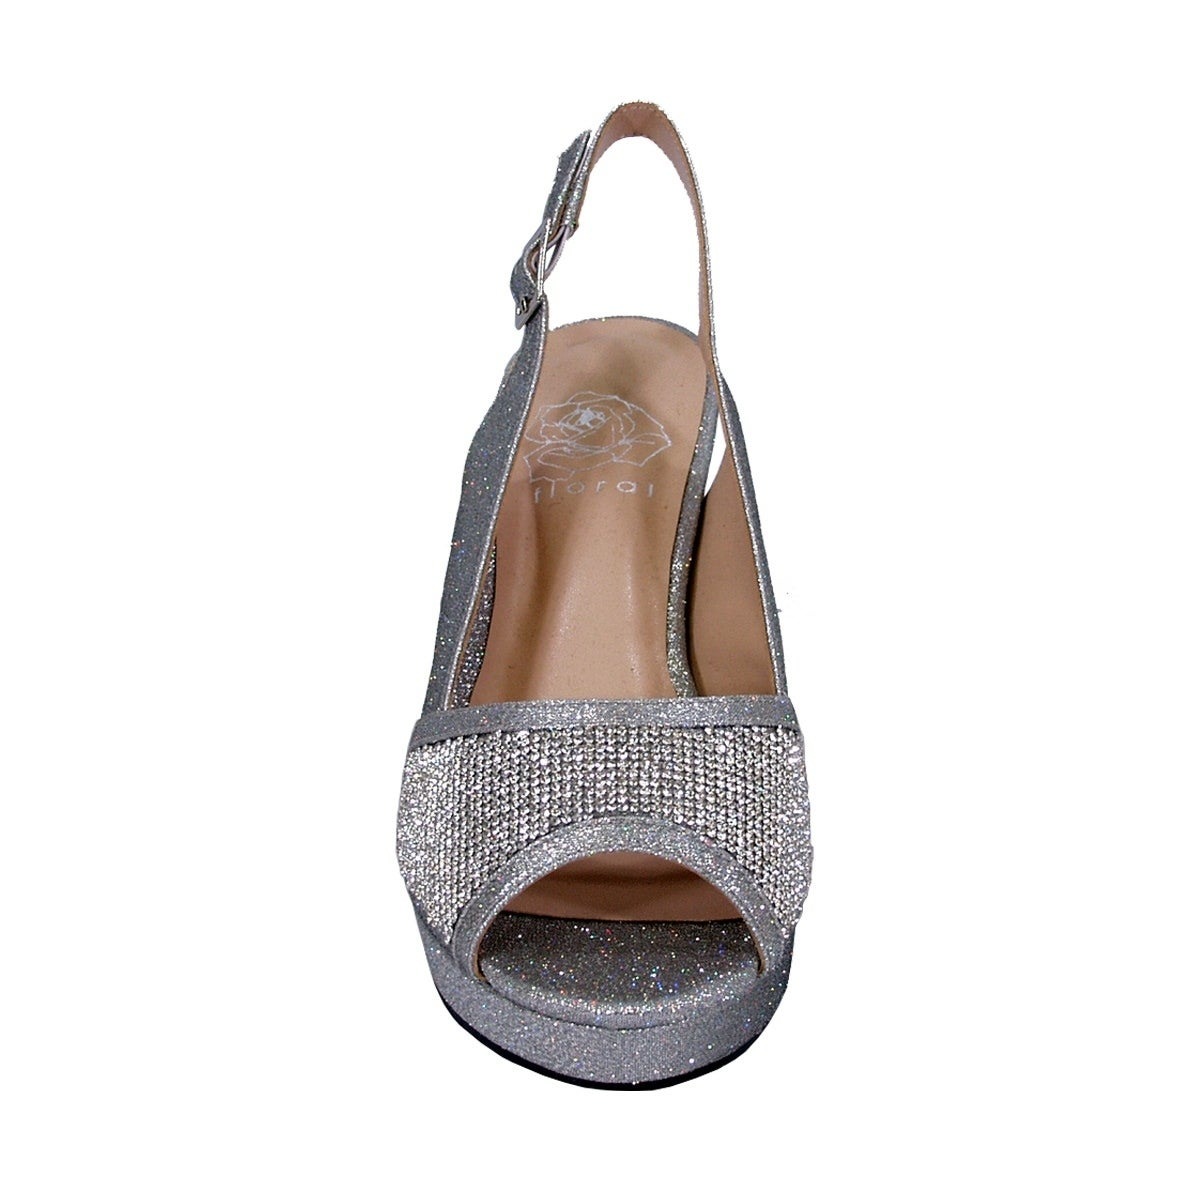 5a3f9c16d495 Shop FLORAL Nadia Women Extra Wide Width Rhinestones Platform Slingback -  Free Shipping Today - Overstock - 18803266